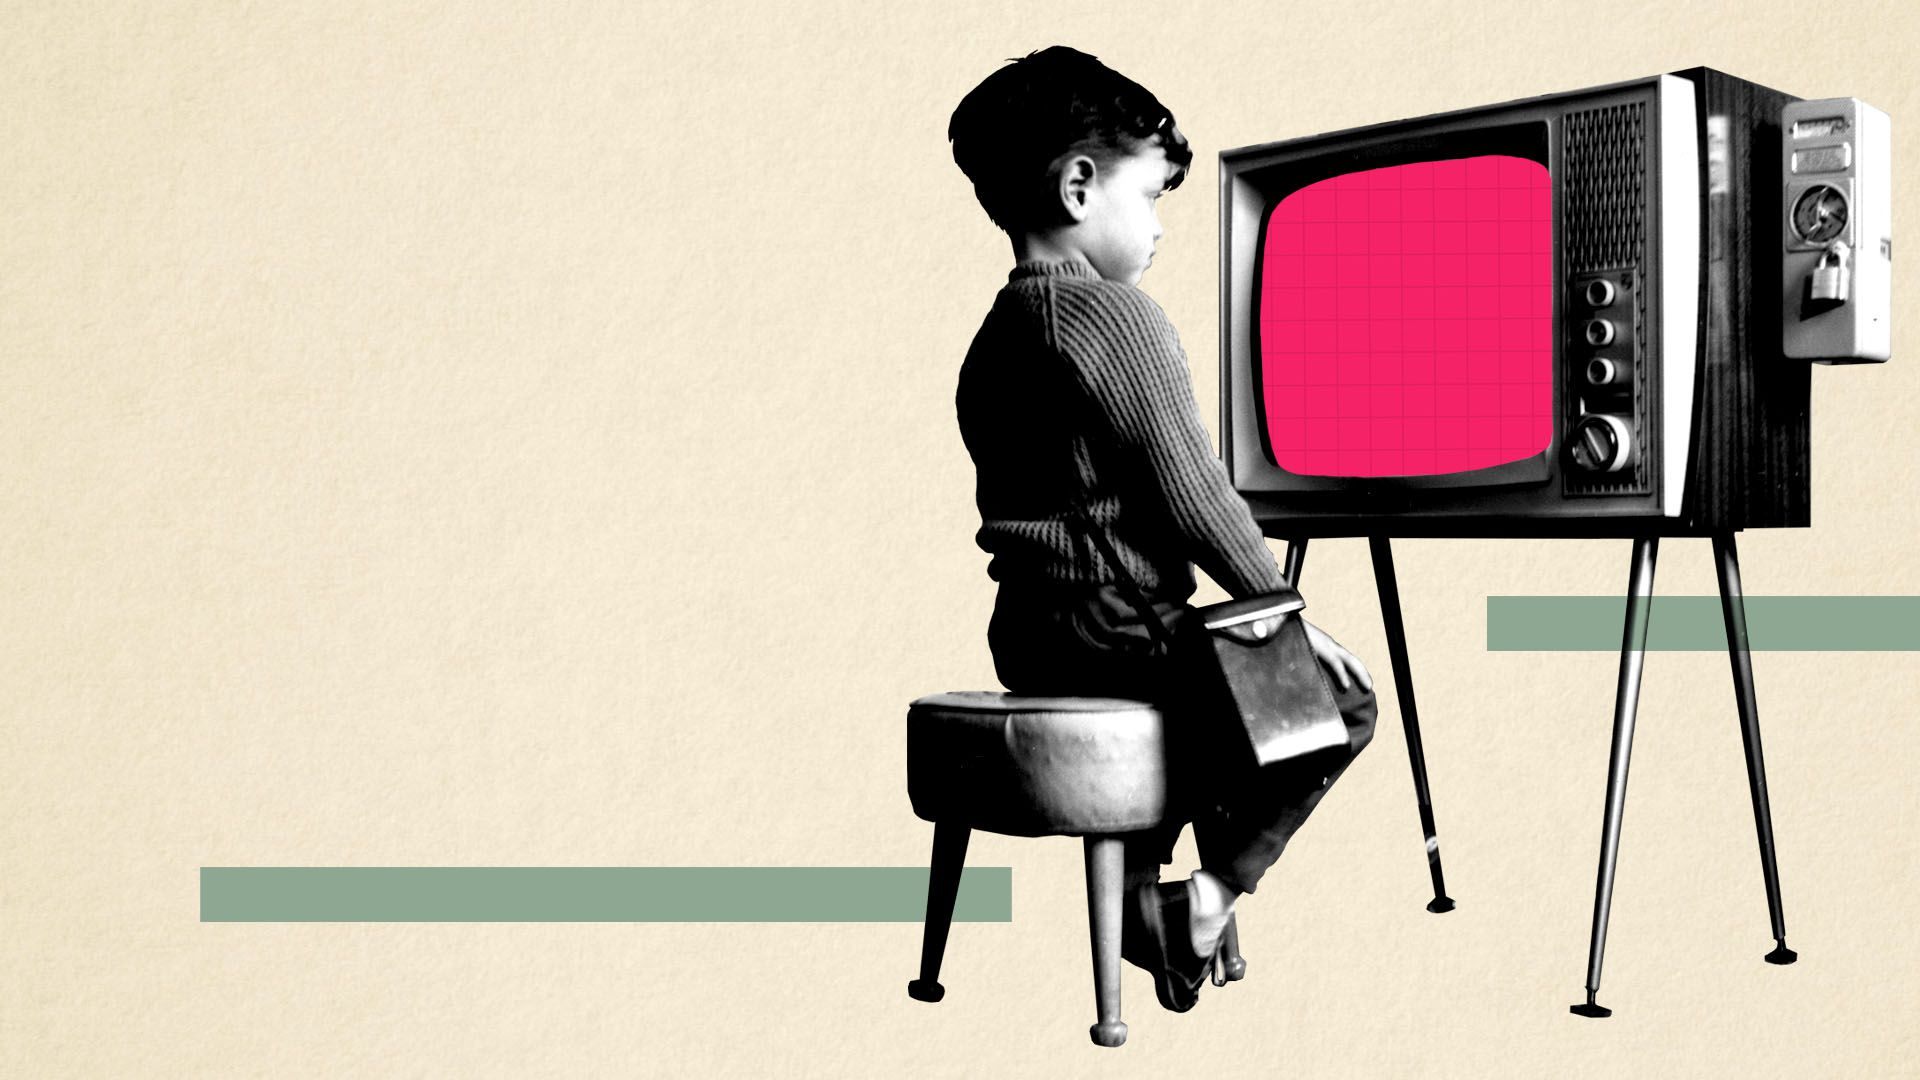 Illustration of a vintage photo of a young boy watching television